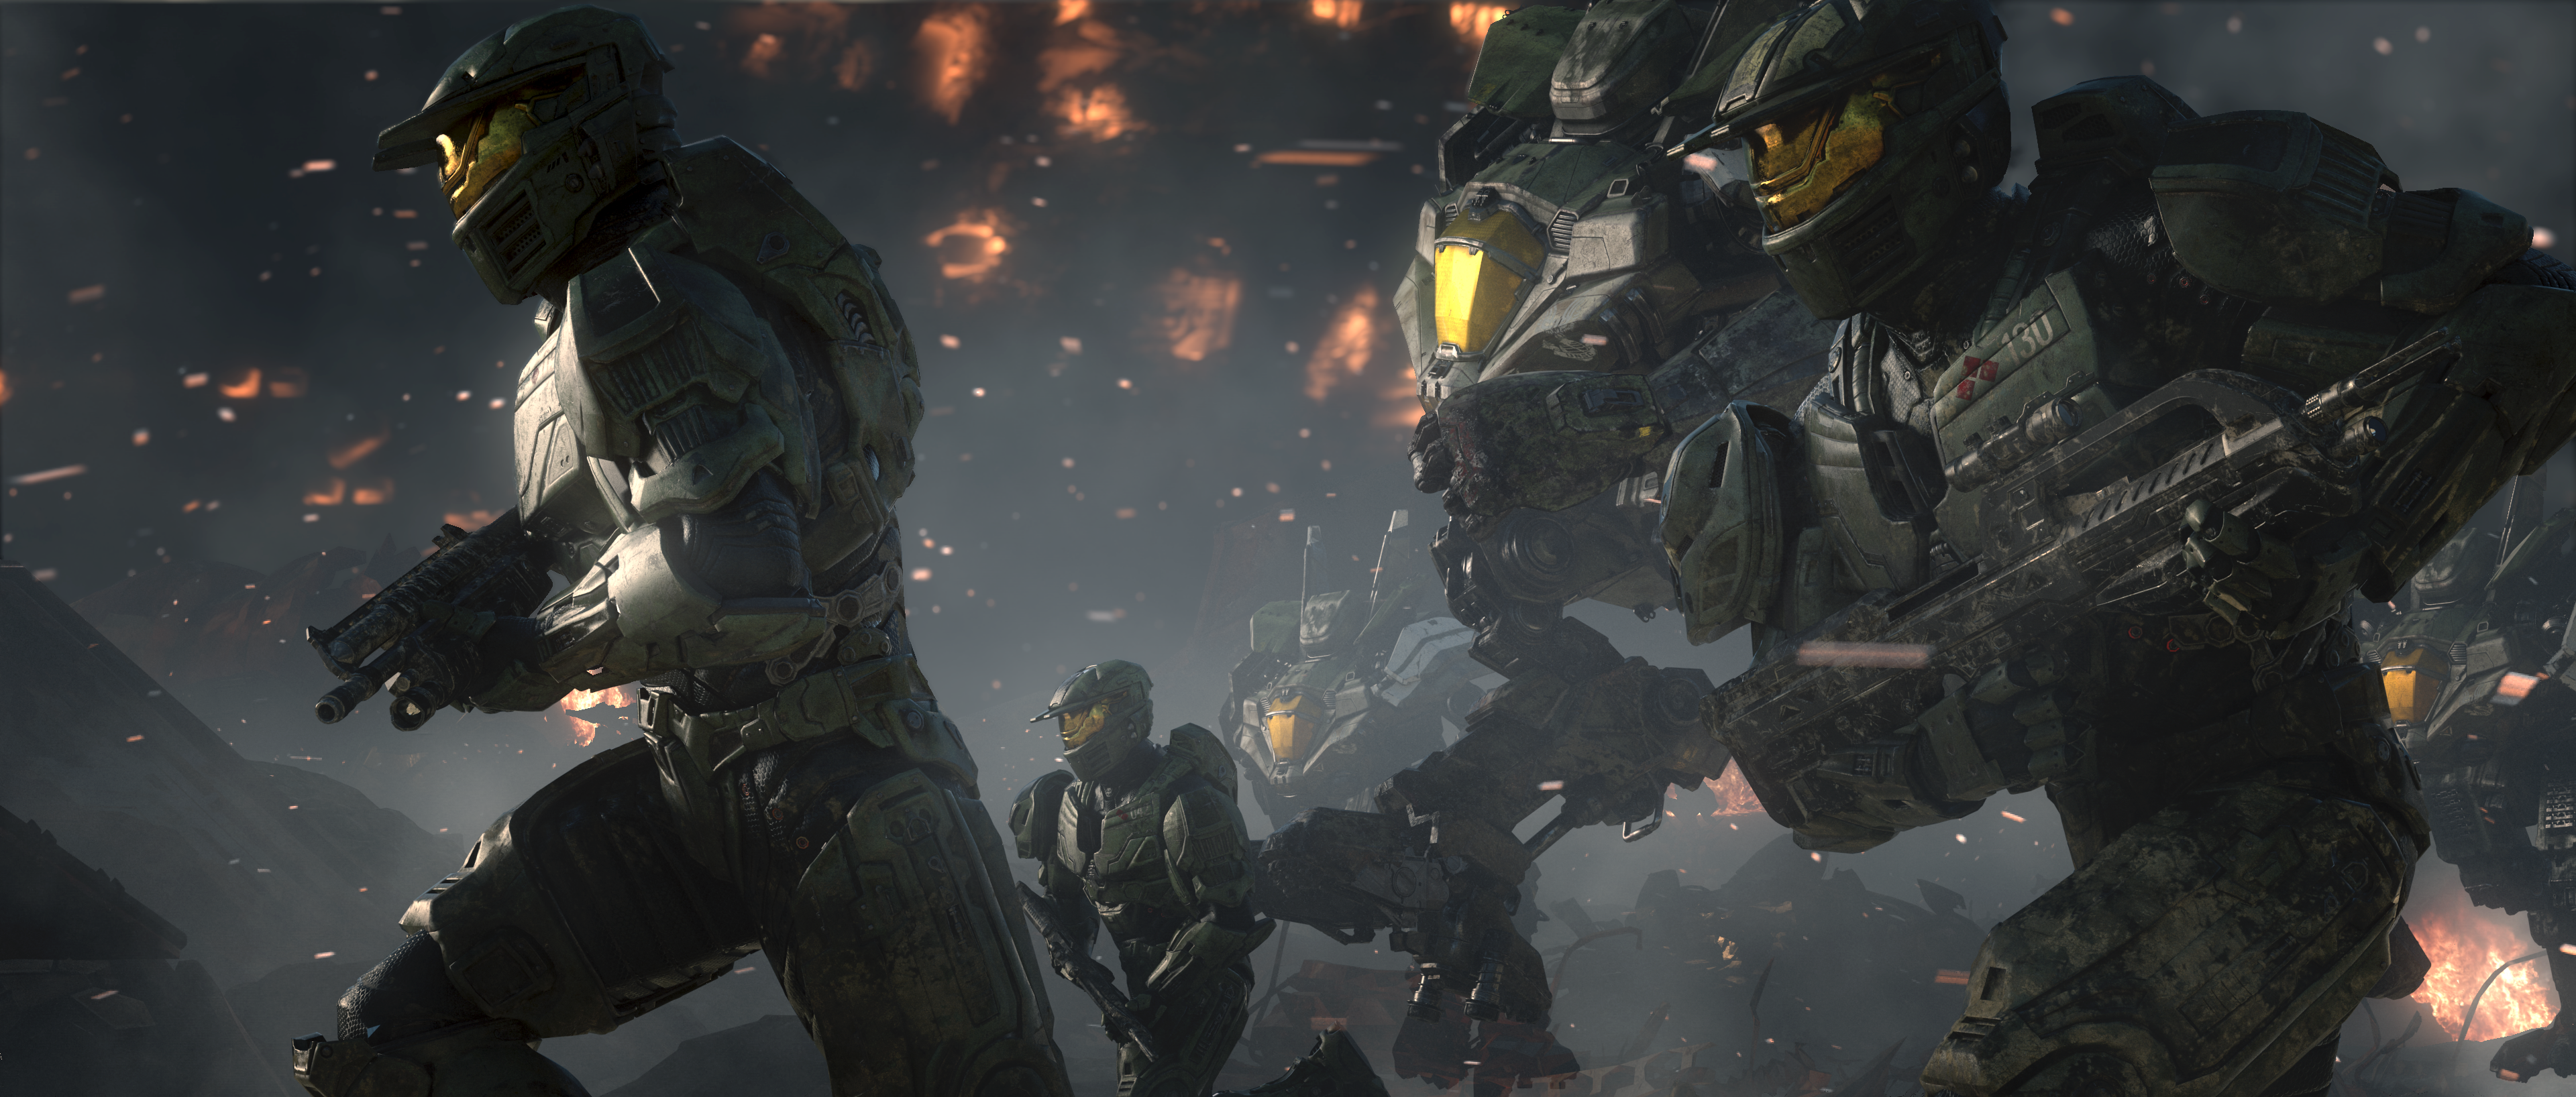 Nice wallpapers Halo Wars 2 3840x1636px